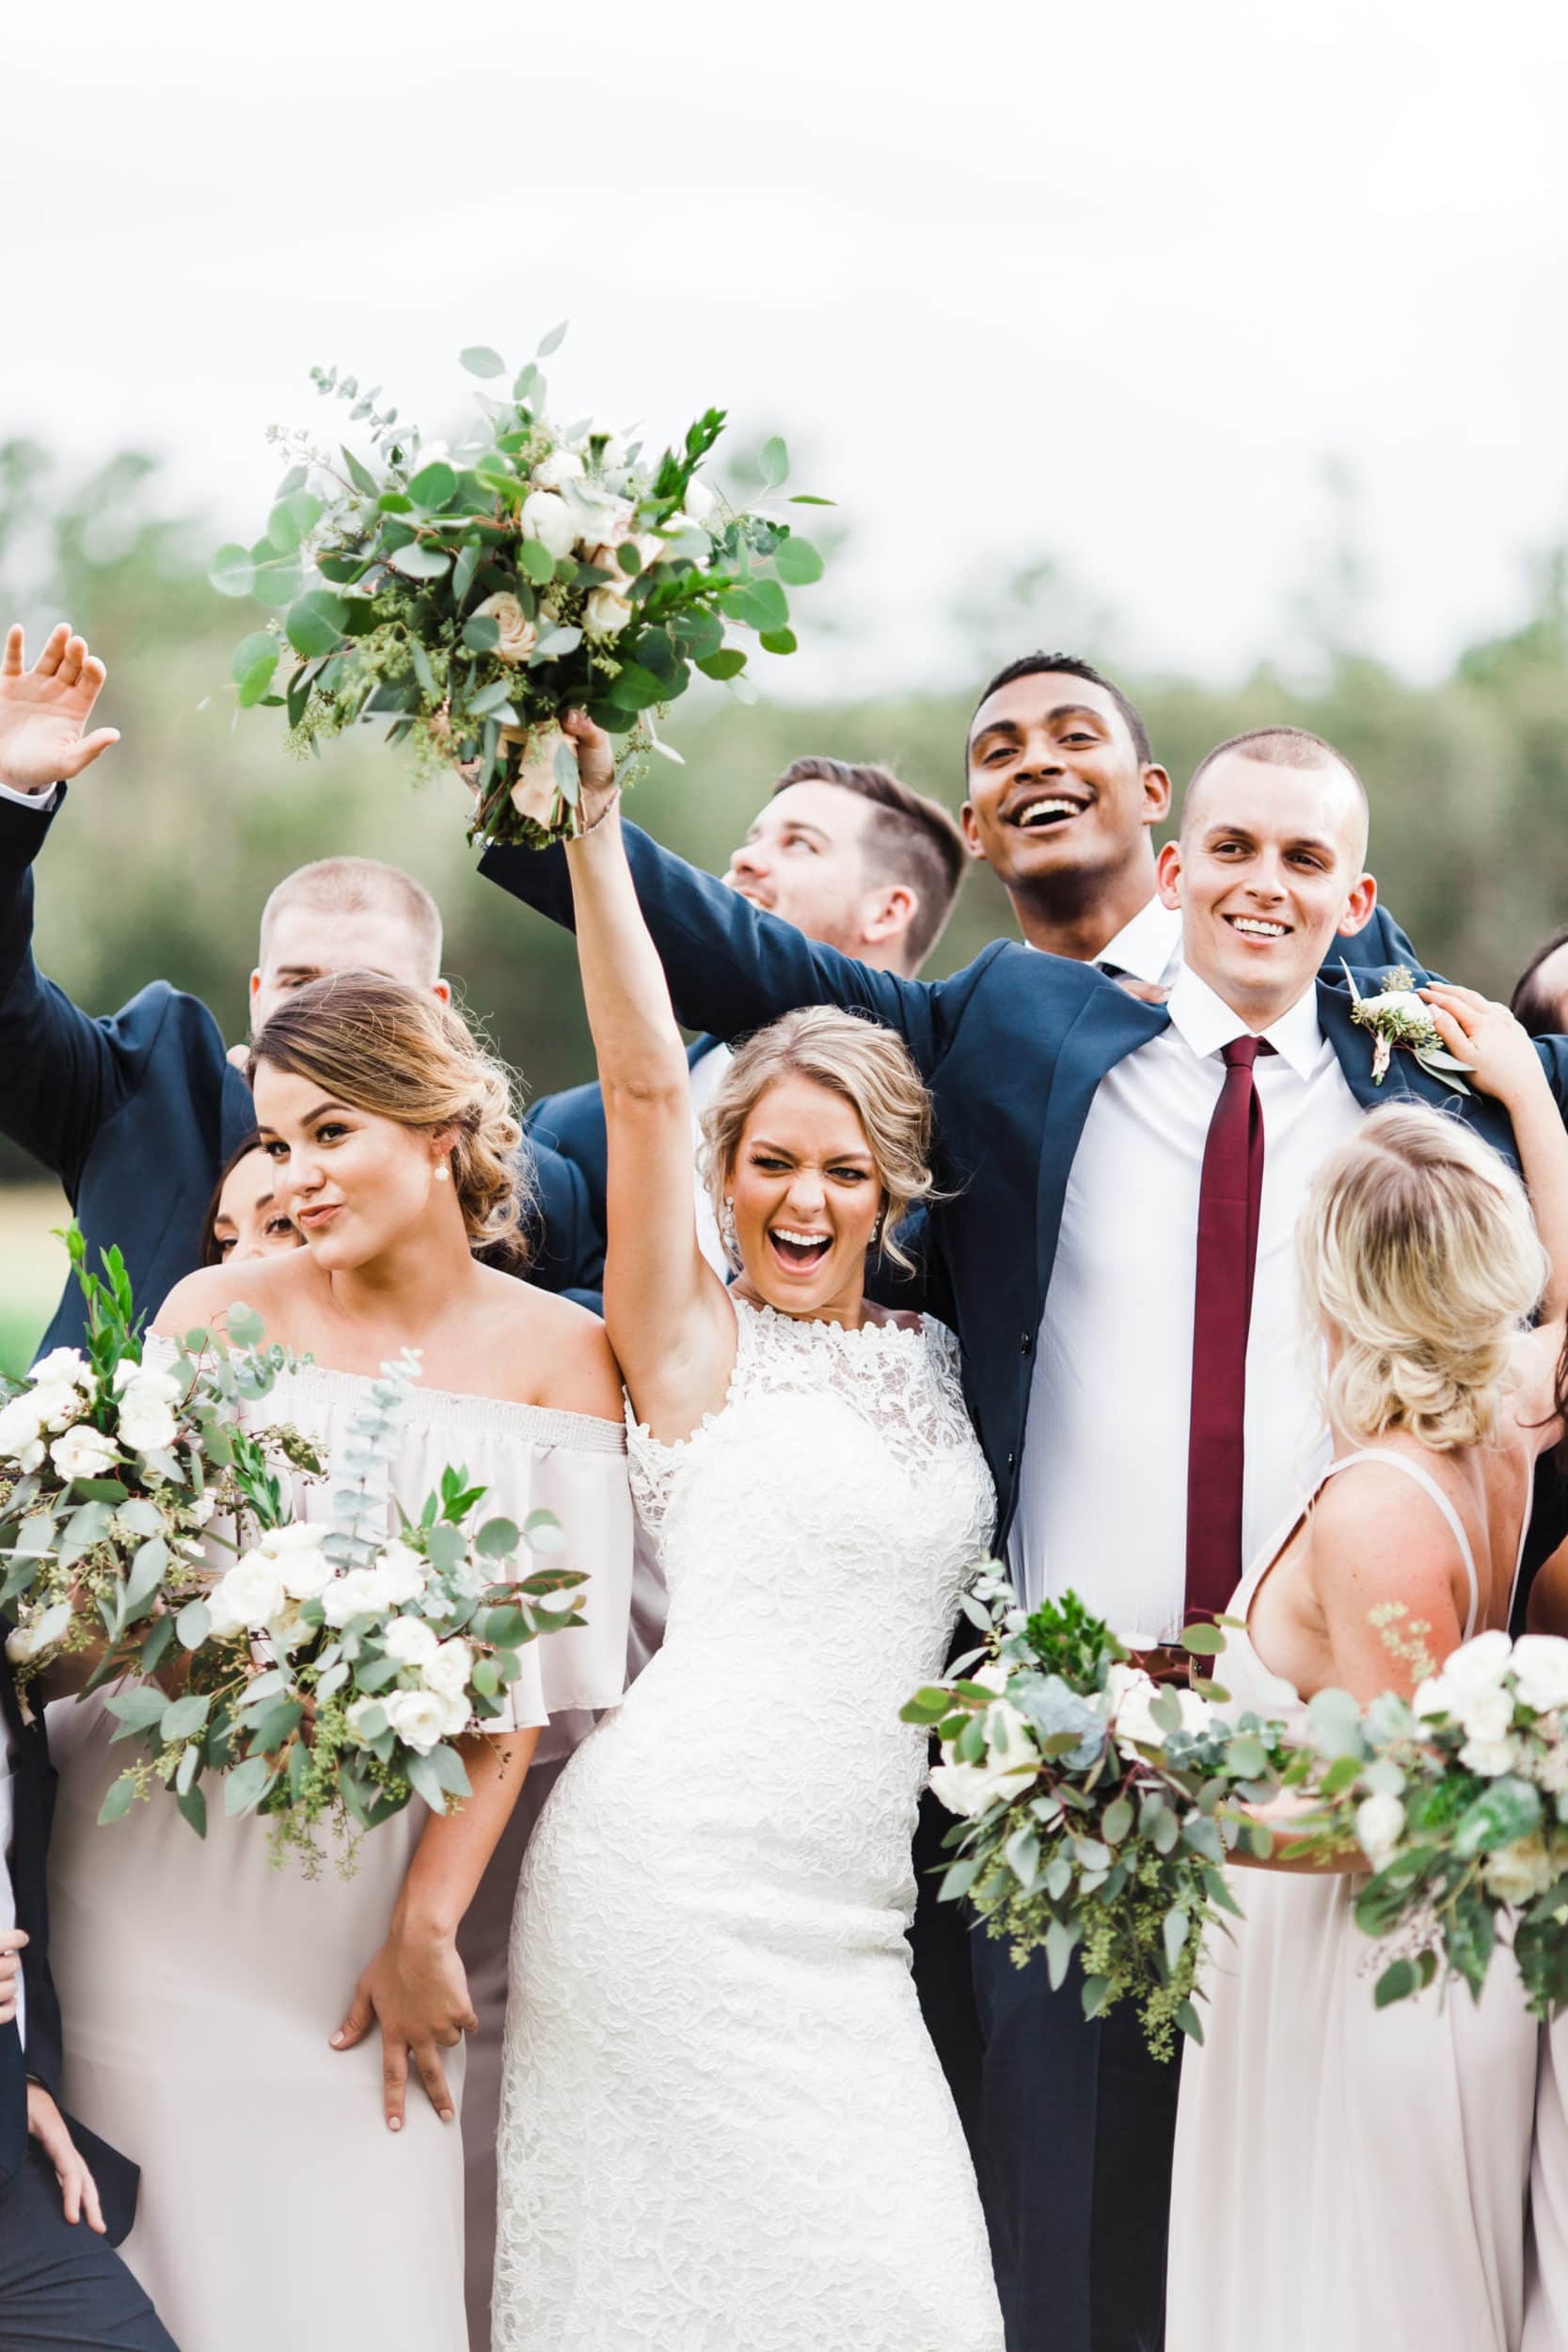 bride cheering while standing with her groom and formal party